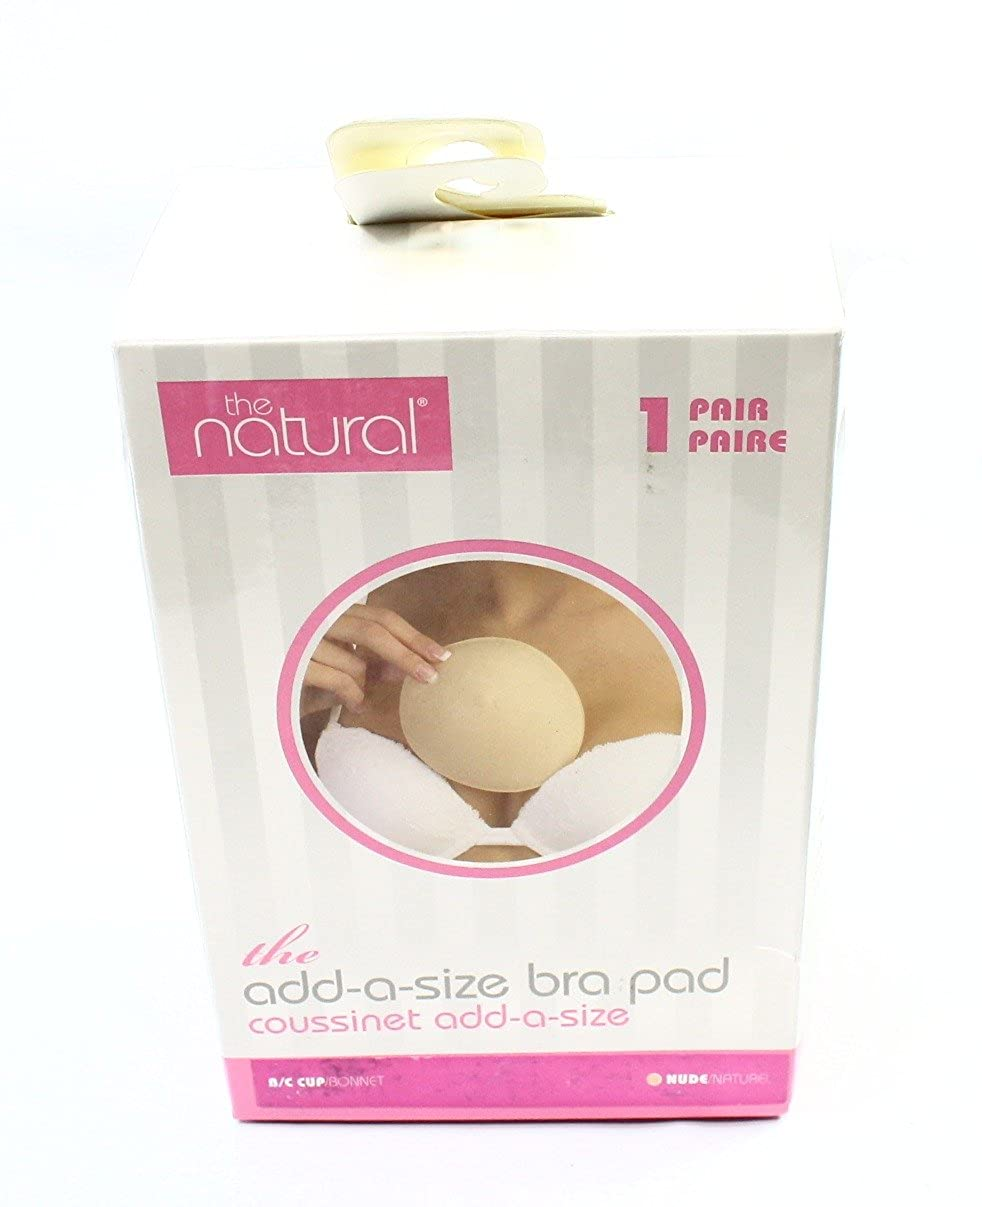 The Natural Womens Add-a-Size Push Up Pad Bra Insert